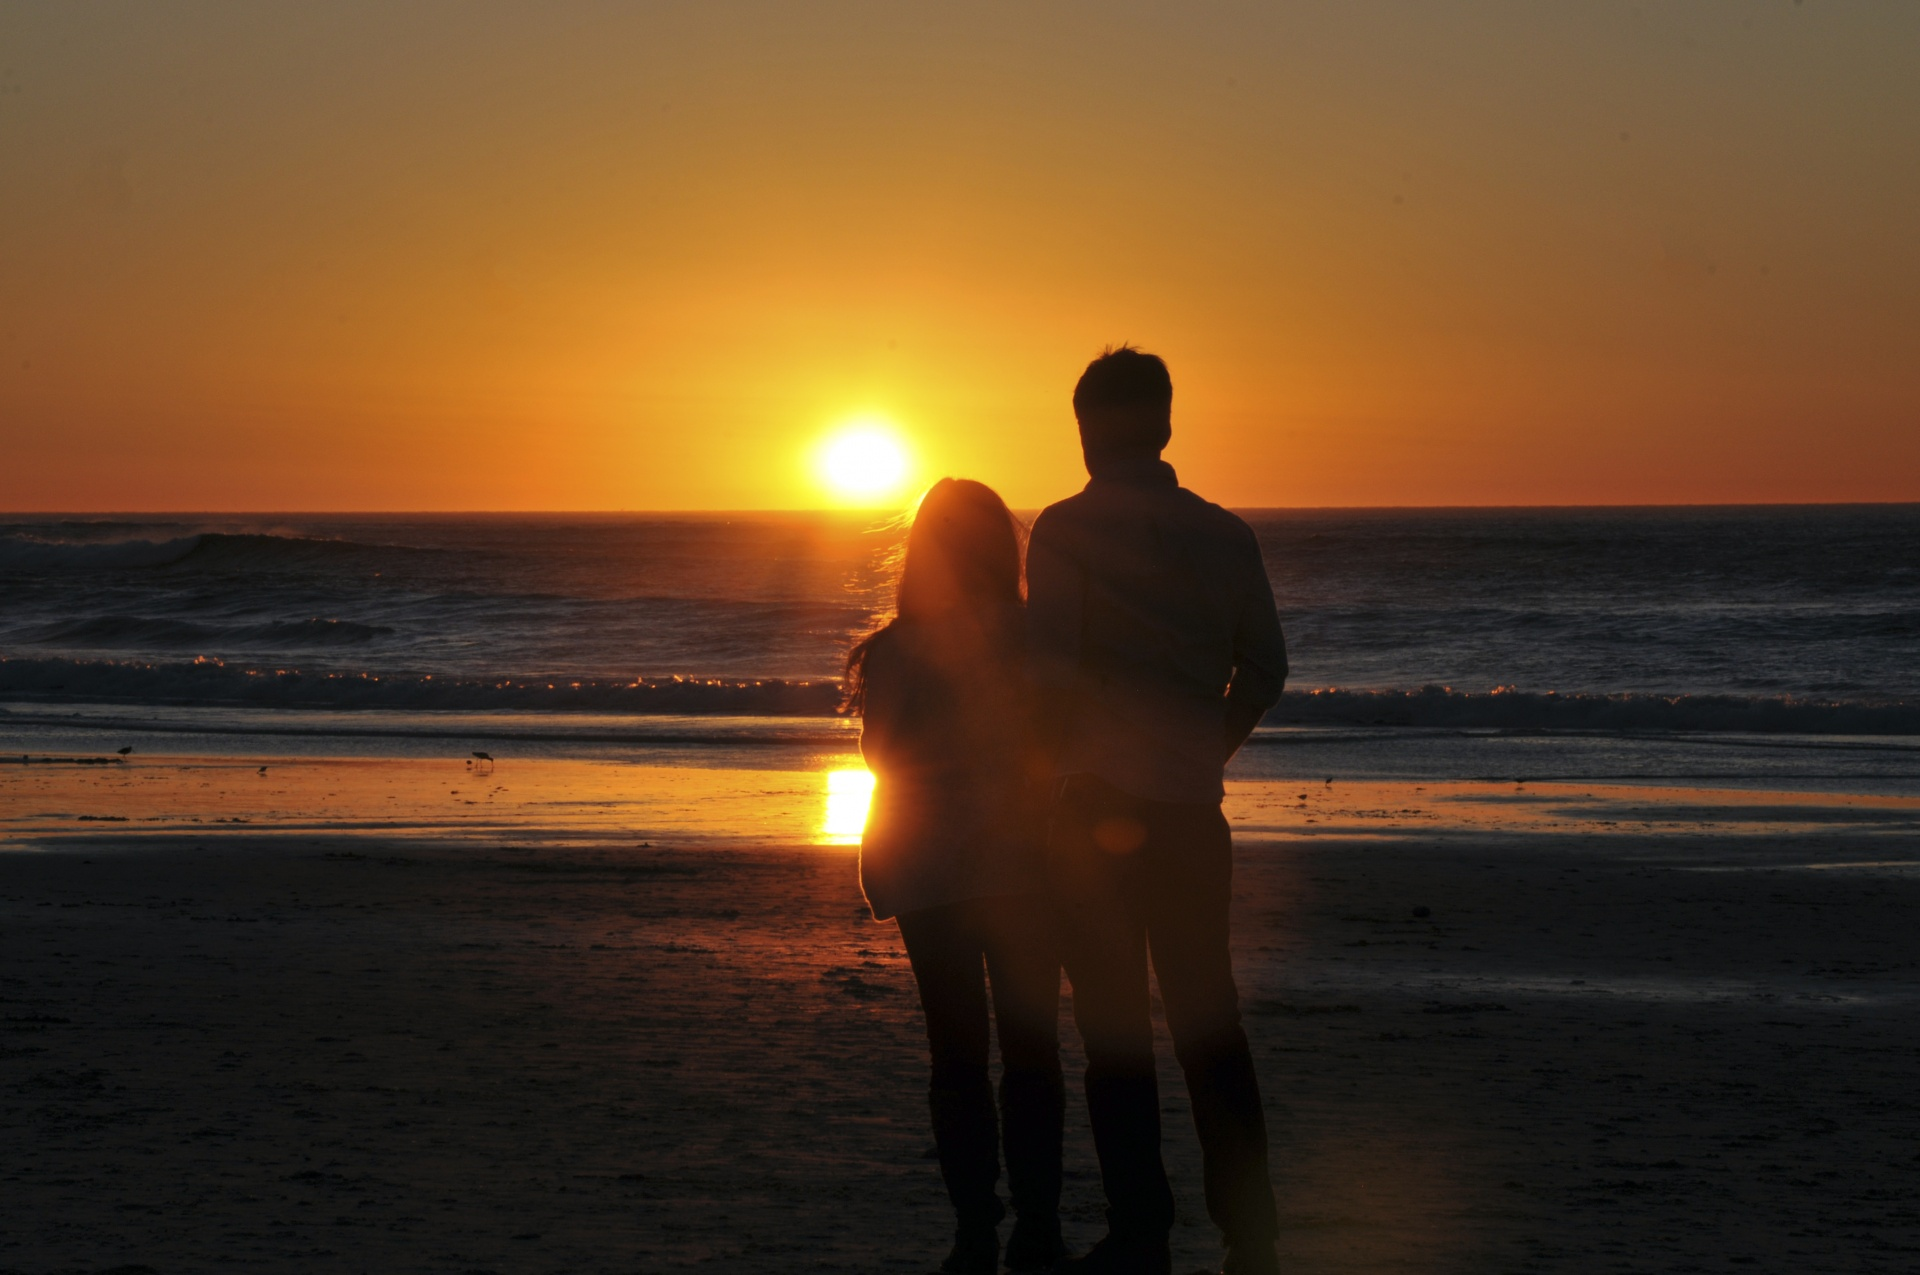 http://www.publicdomainpictures.net/view-image.php?image=149016&picture=lovers-enjoying-ocean-sunset